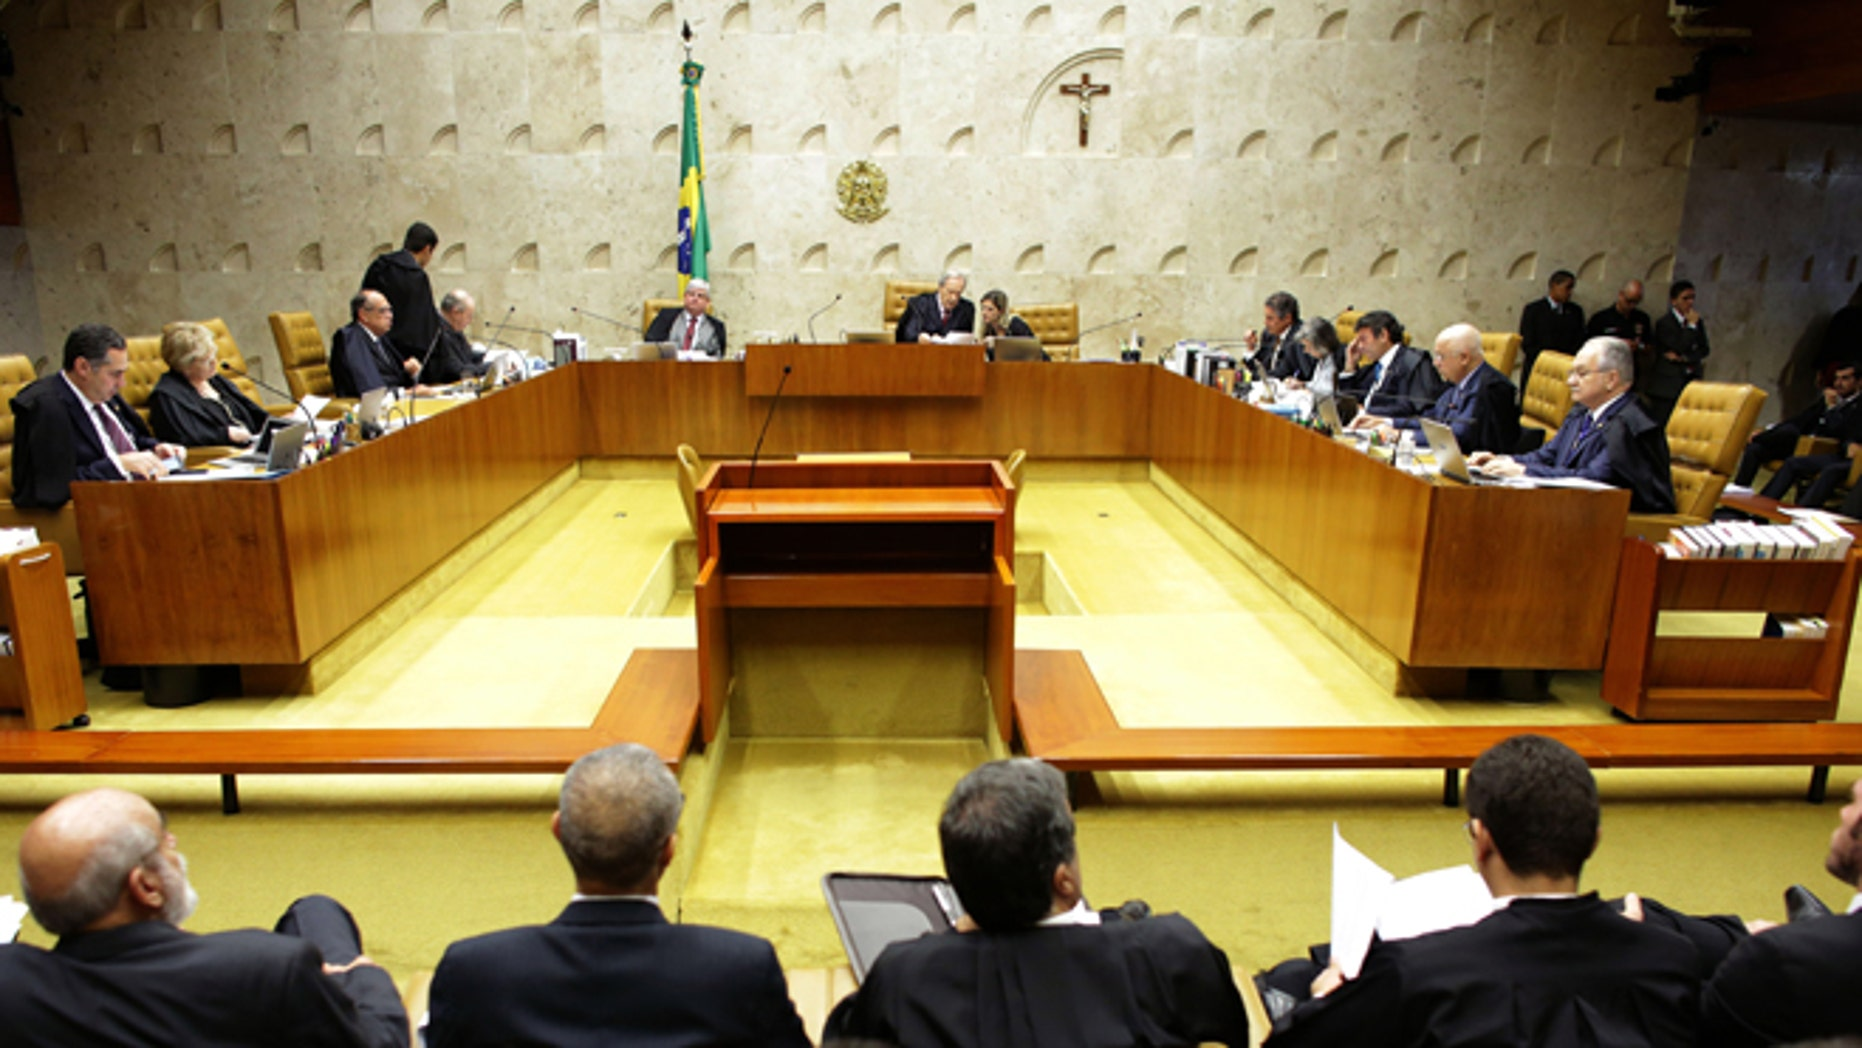 Brazil's Supreme Court holds session on the impeachment proceedings in Brasilia, Brazil, Thursday, April 14, 2016.